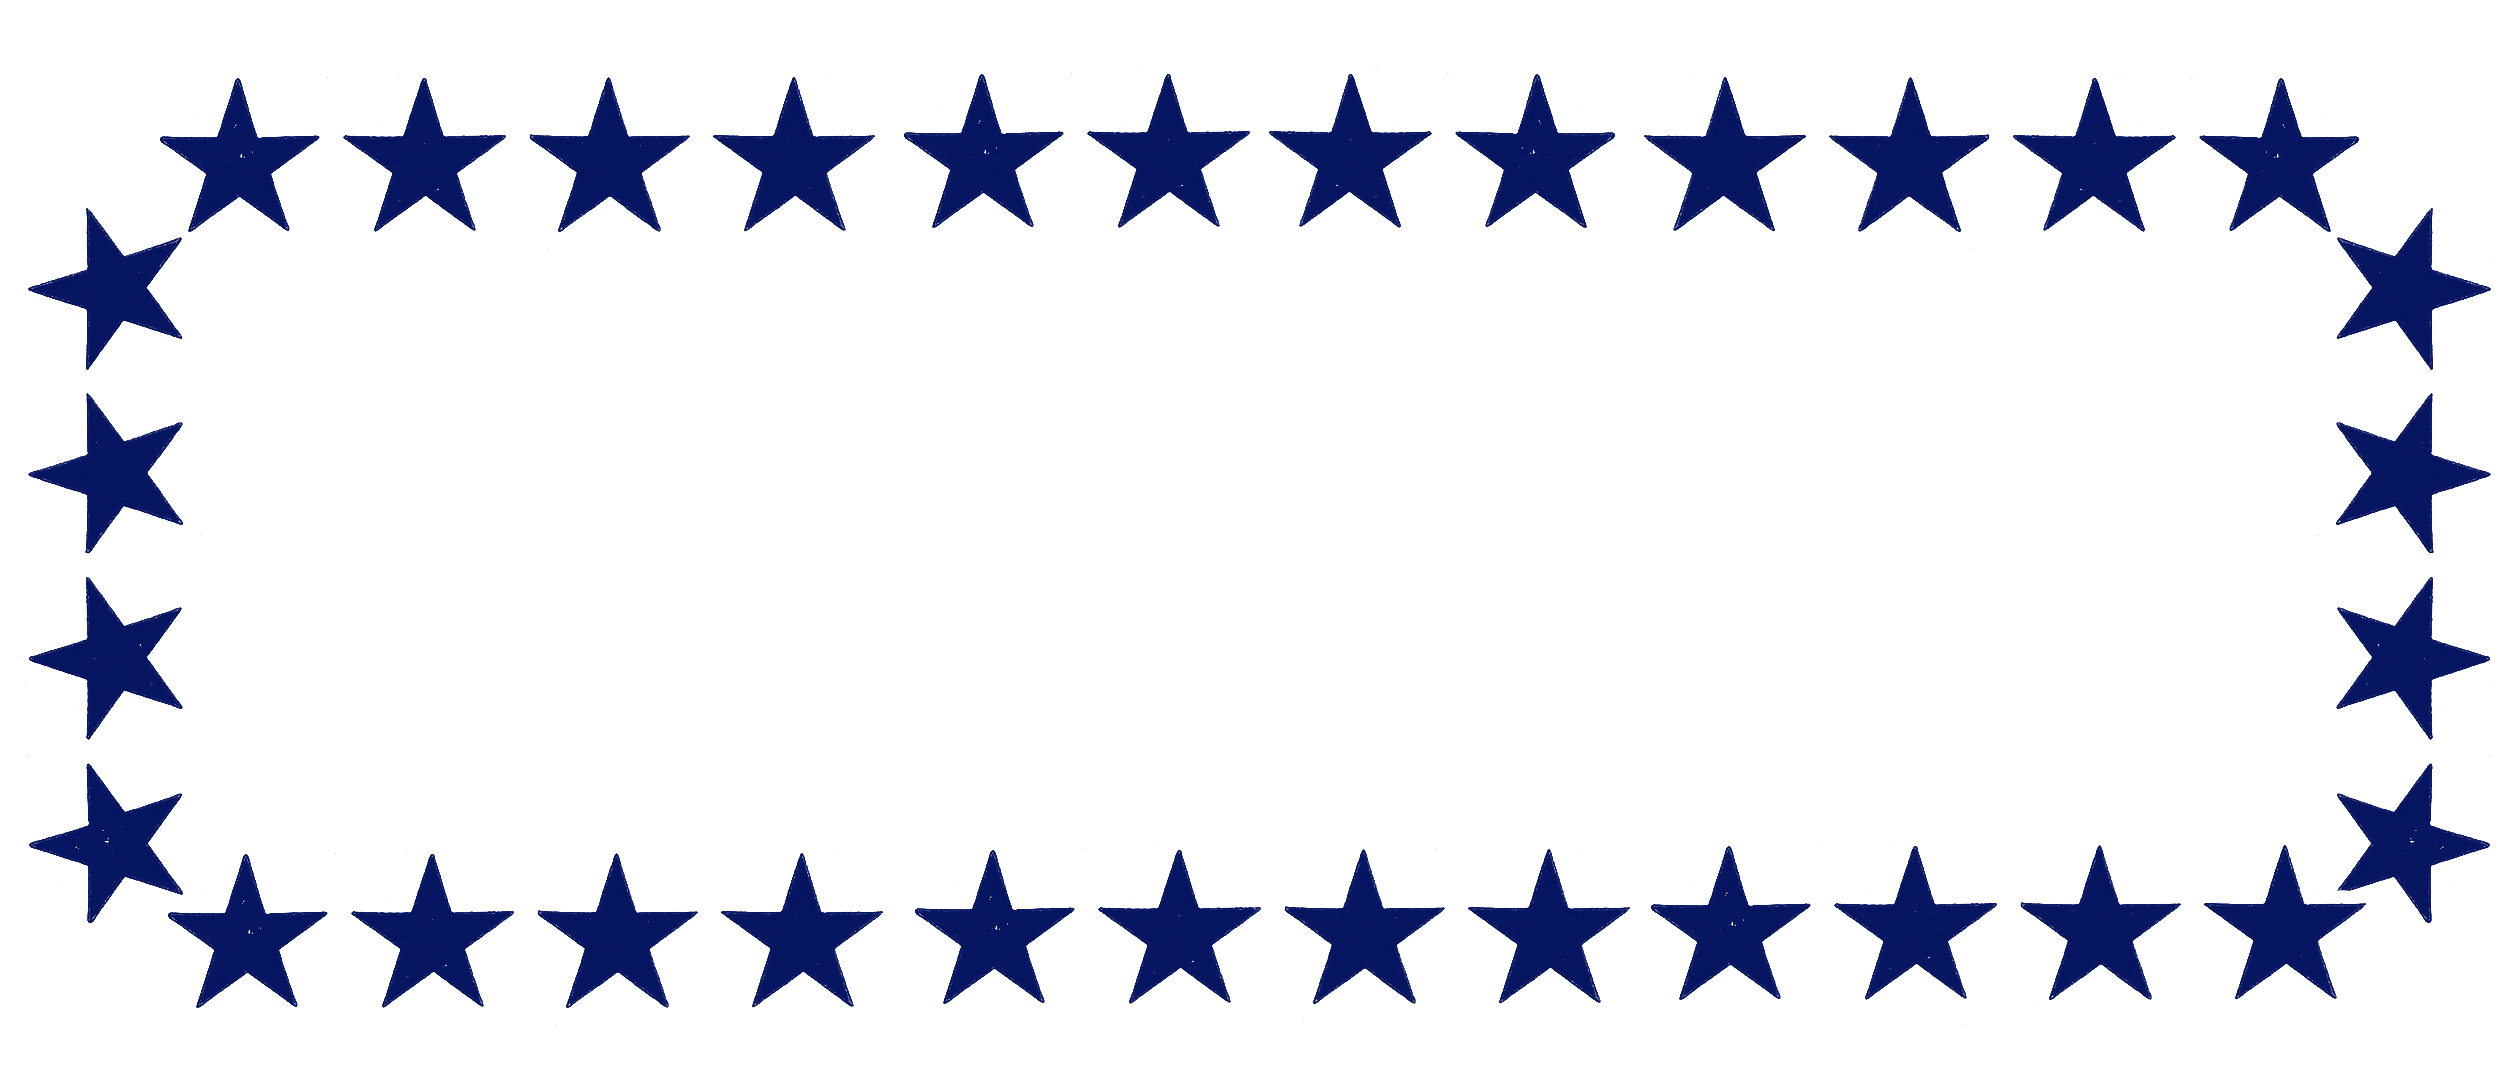 free download Start clipart navy star. Images free the graphics